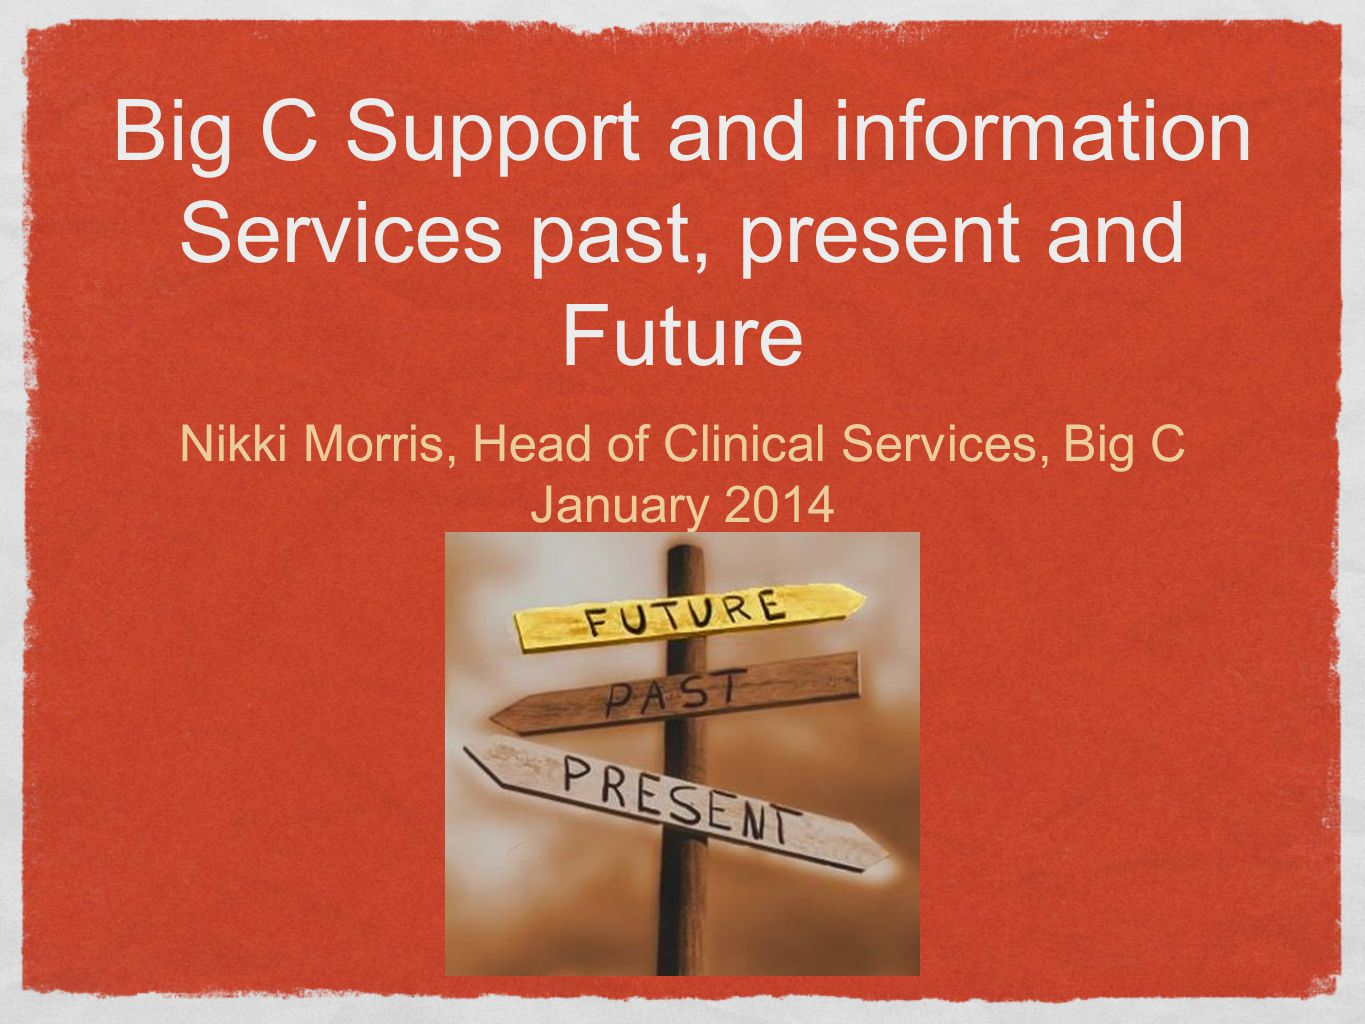 Big C Support and information Services past, present and Future Nikki Morris, Head of Clinical Services, Big C January 2014